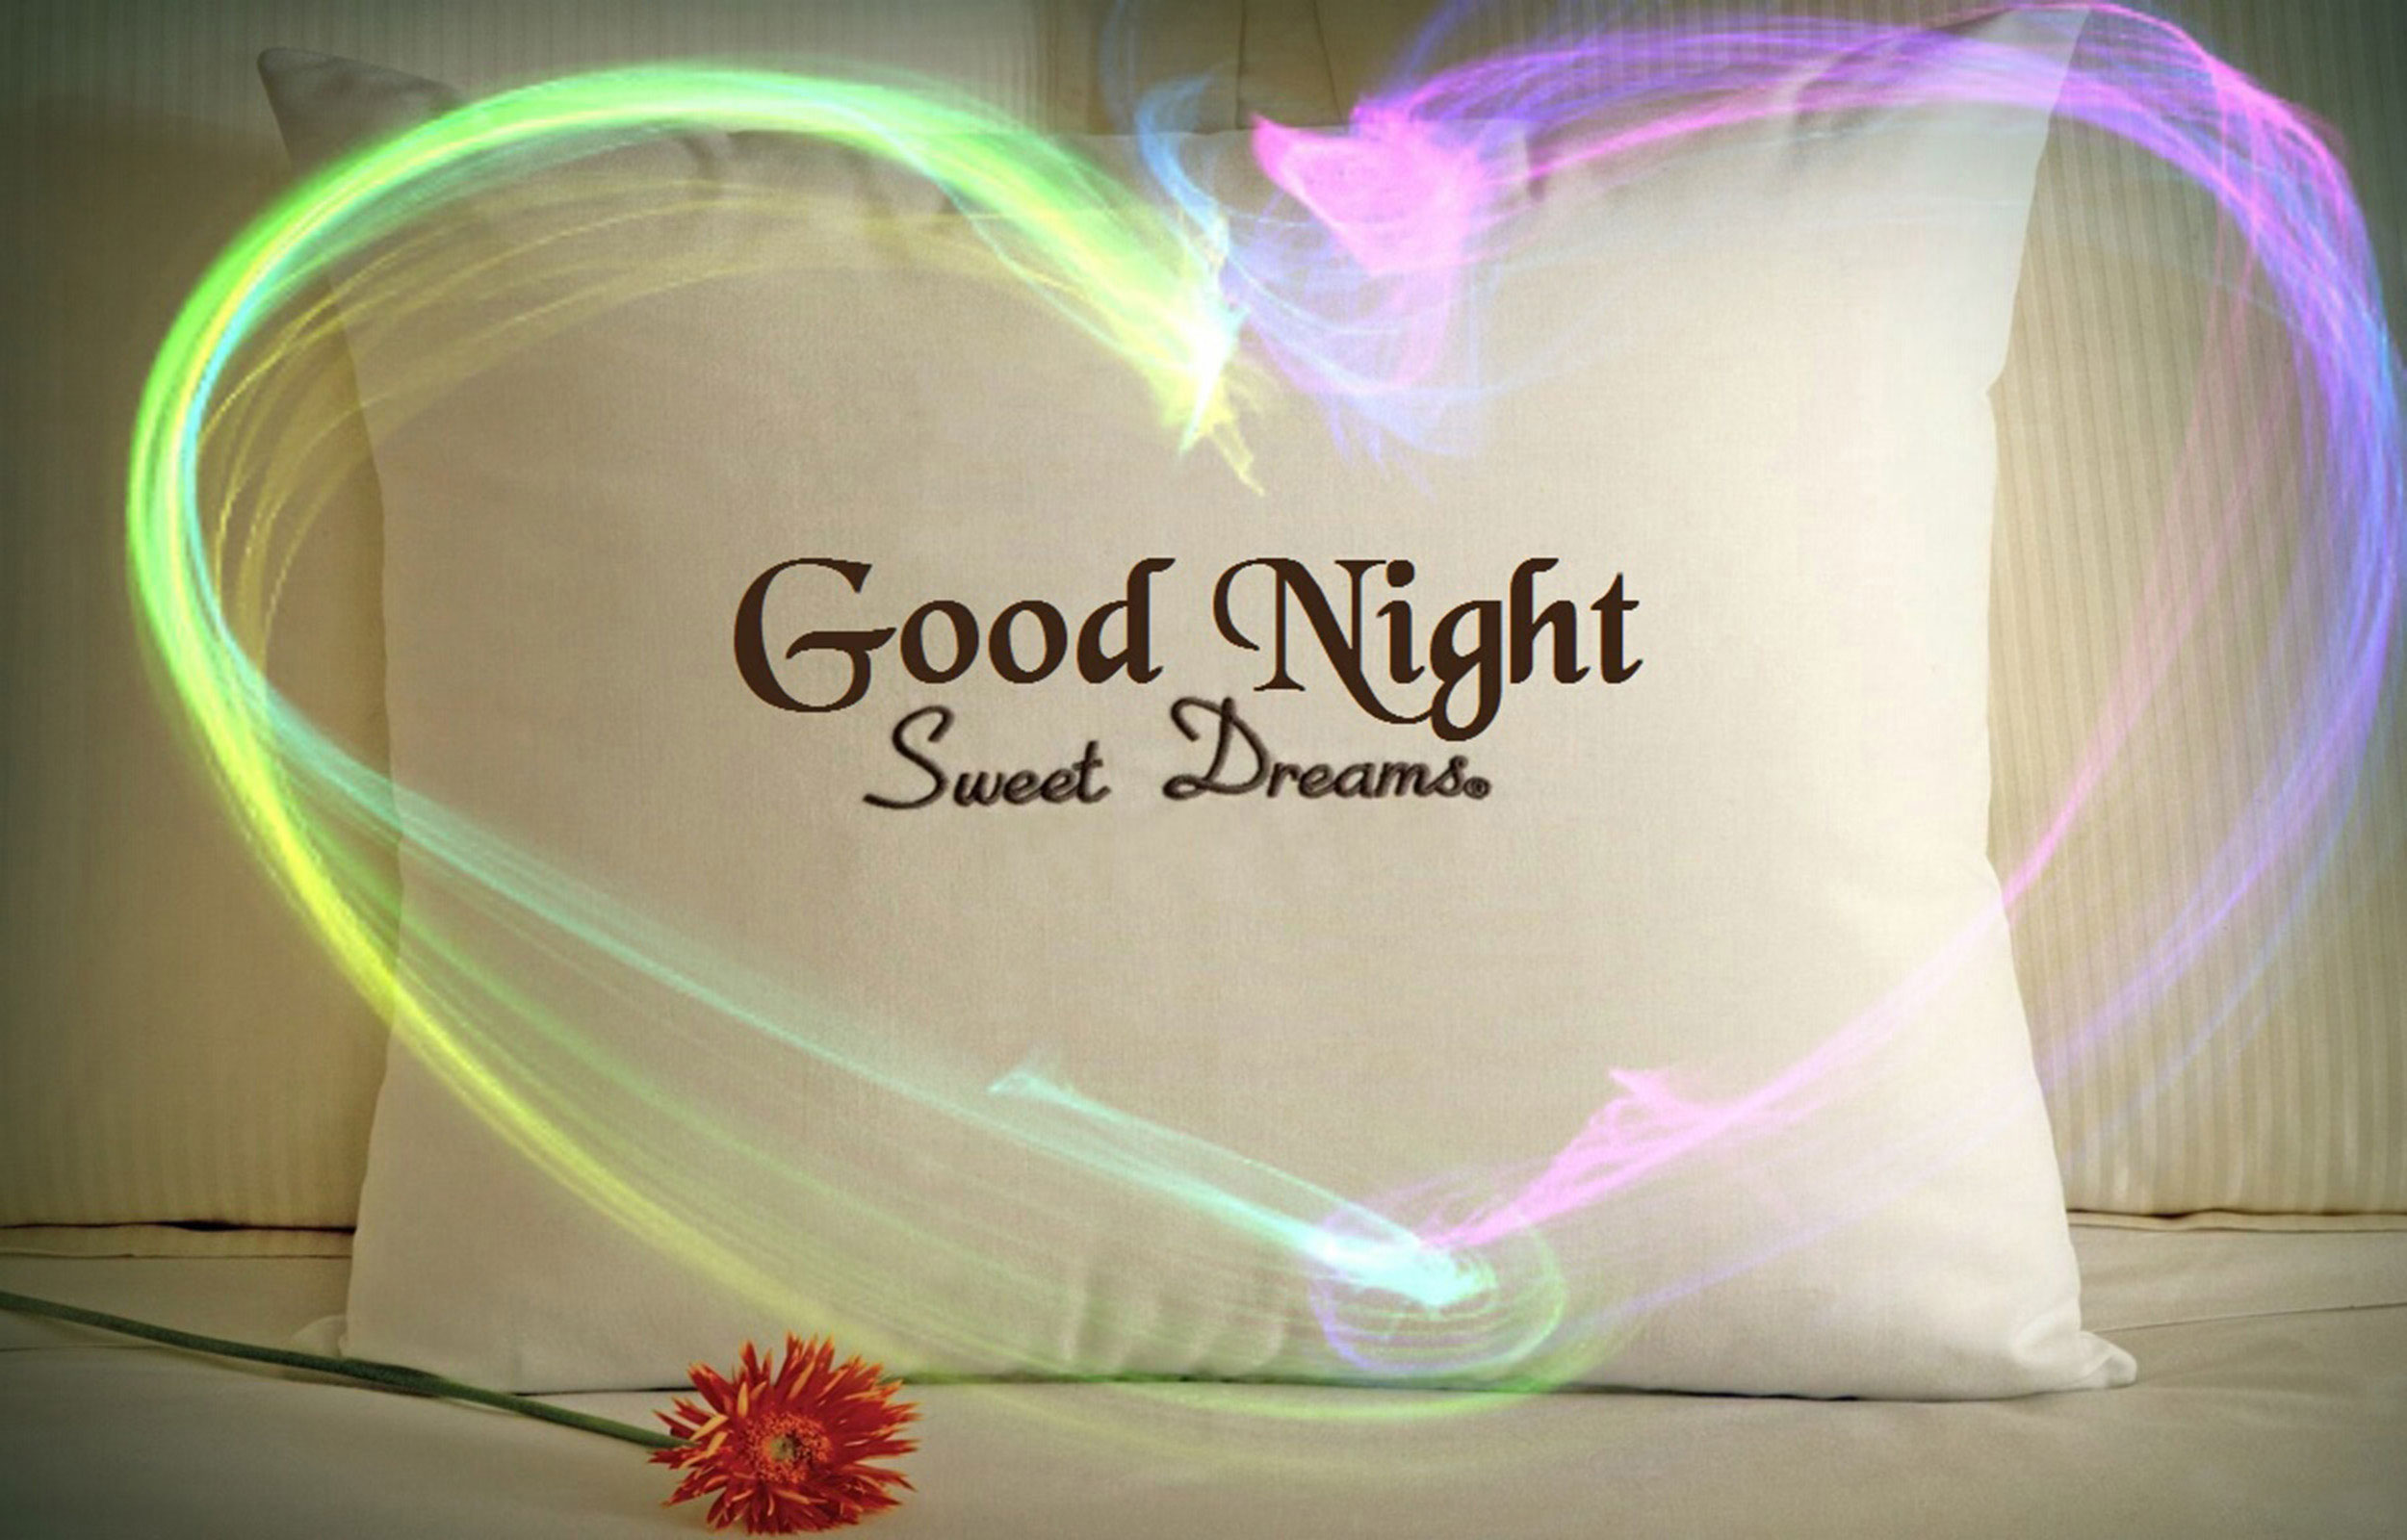 1000+ images about Good night on Pinterest | Good night